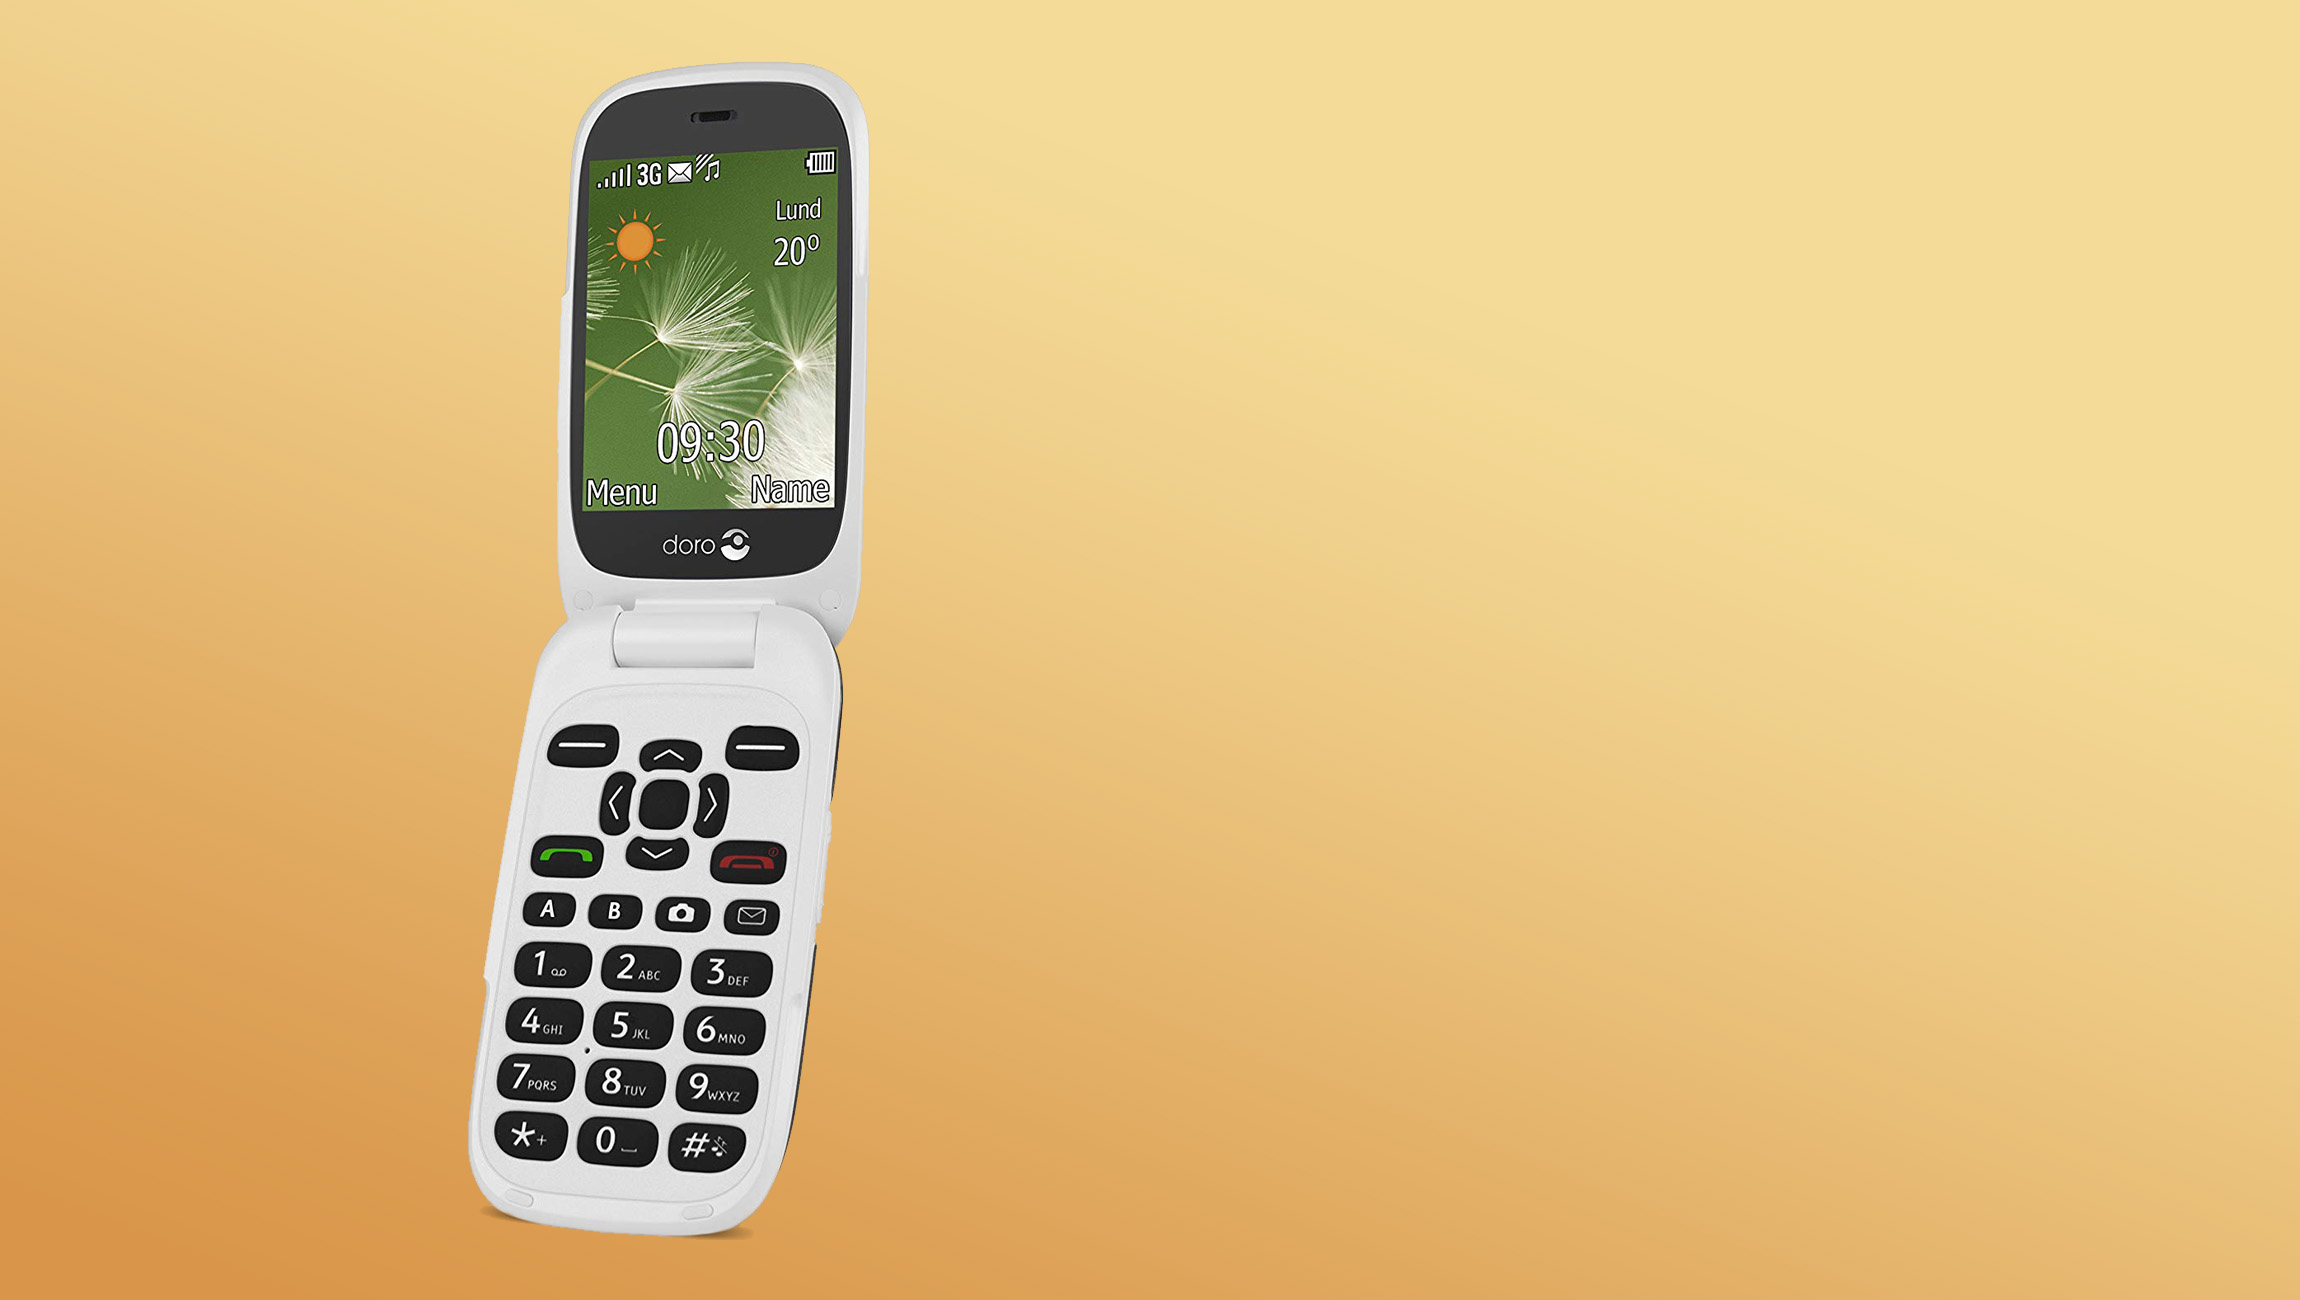 Doro PhoneEasy 6520 - Feel more secure with Assistance button